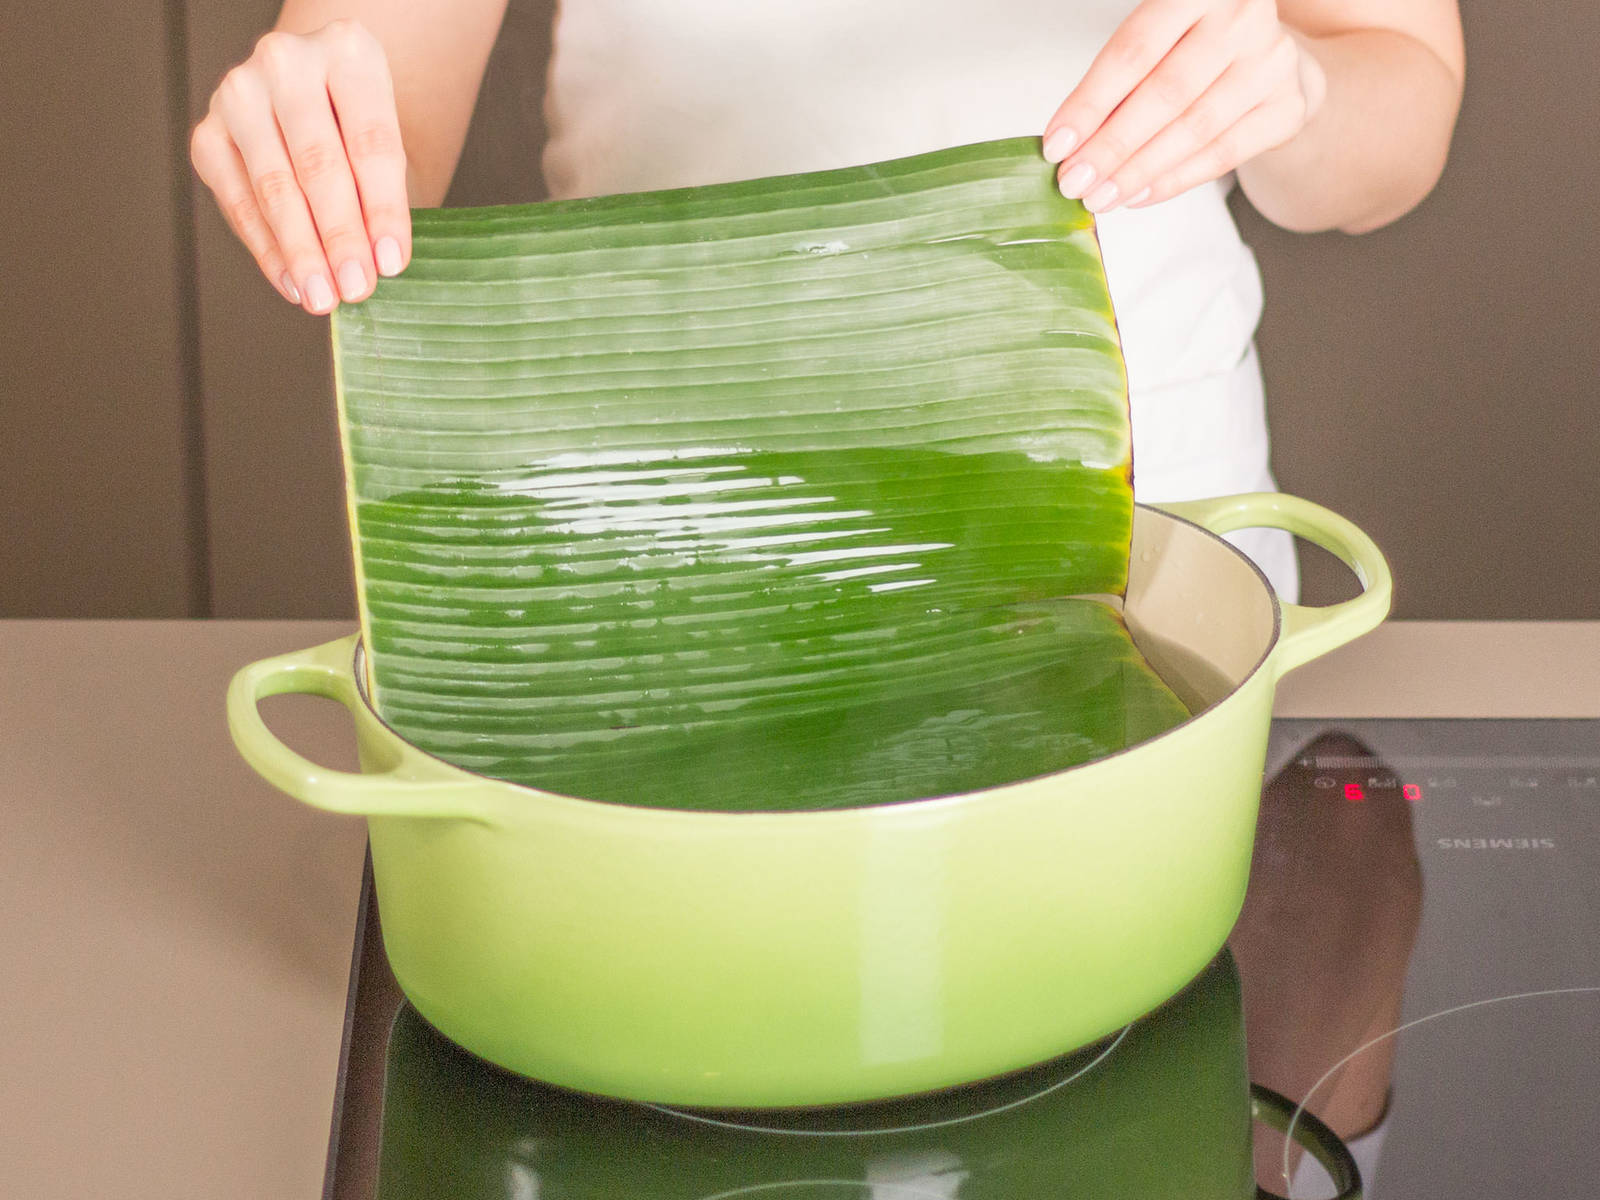 Cut banana leaves in into pieces large enough to wrap around cod pieces. Heat water in a large saucepan: do not boil. Add banana leaves one at a time for approx. 2 min., or until softened.